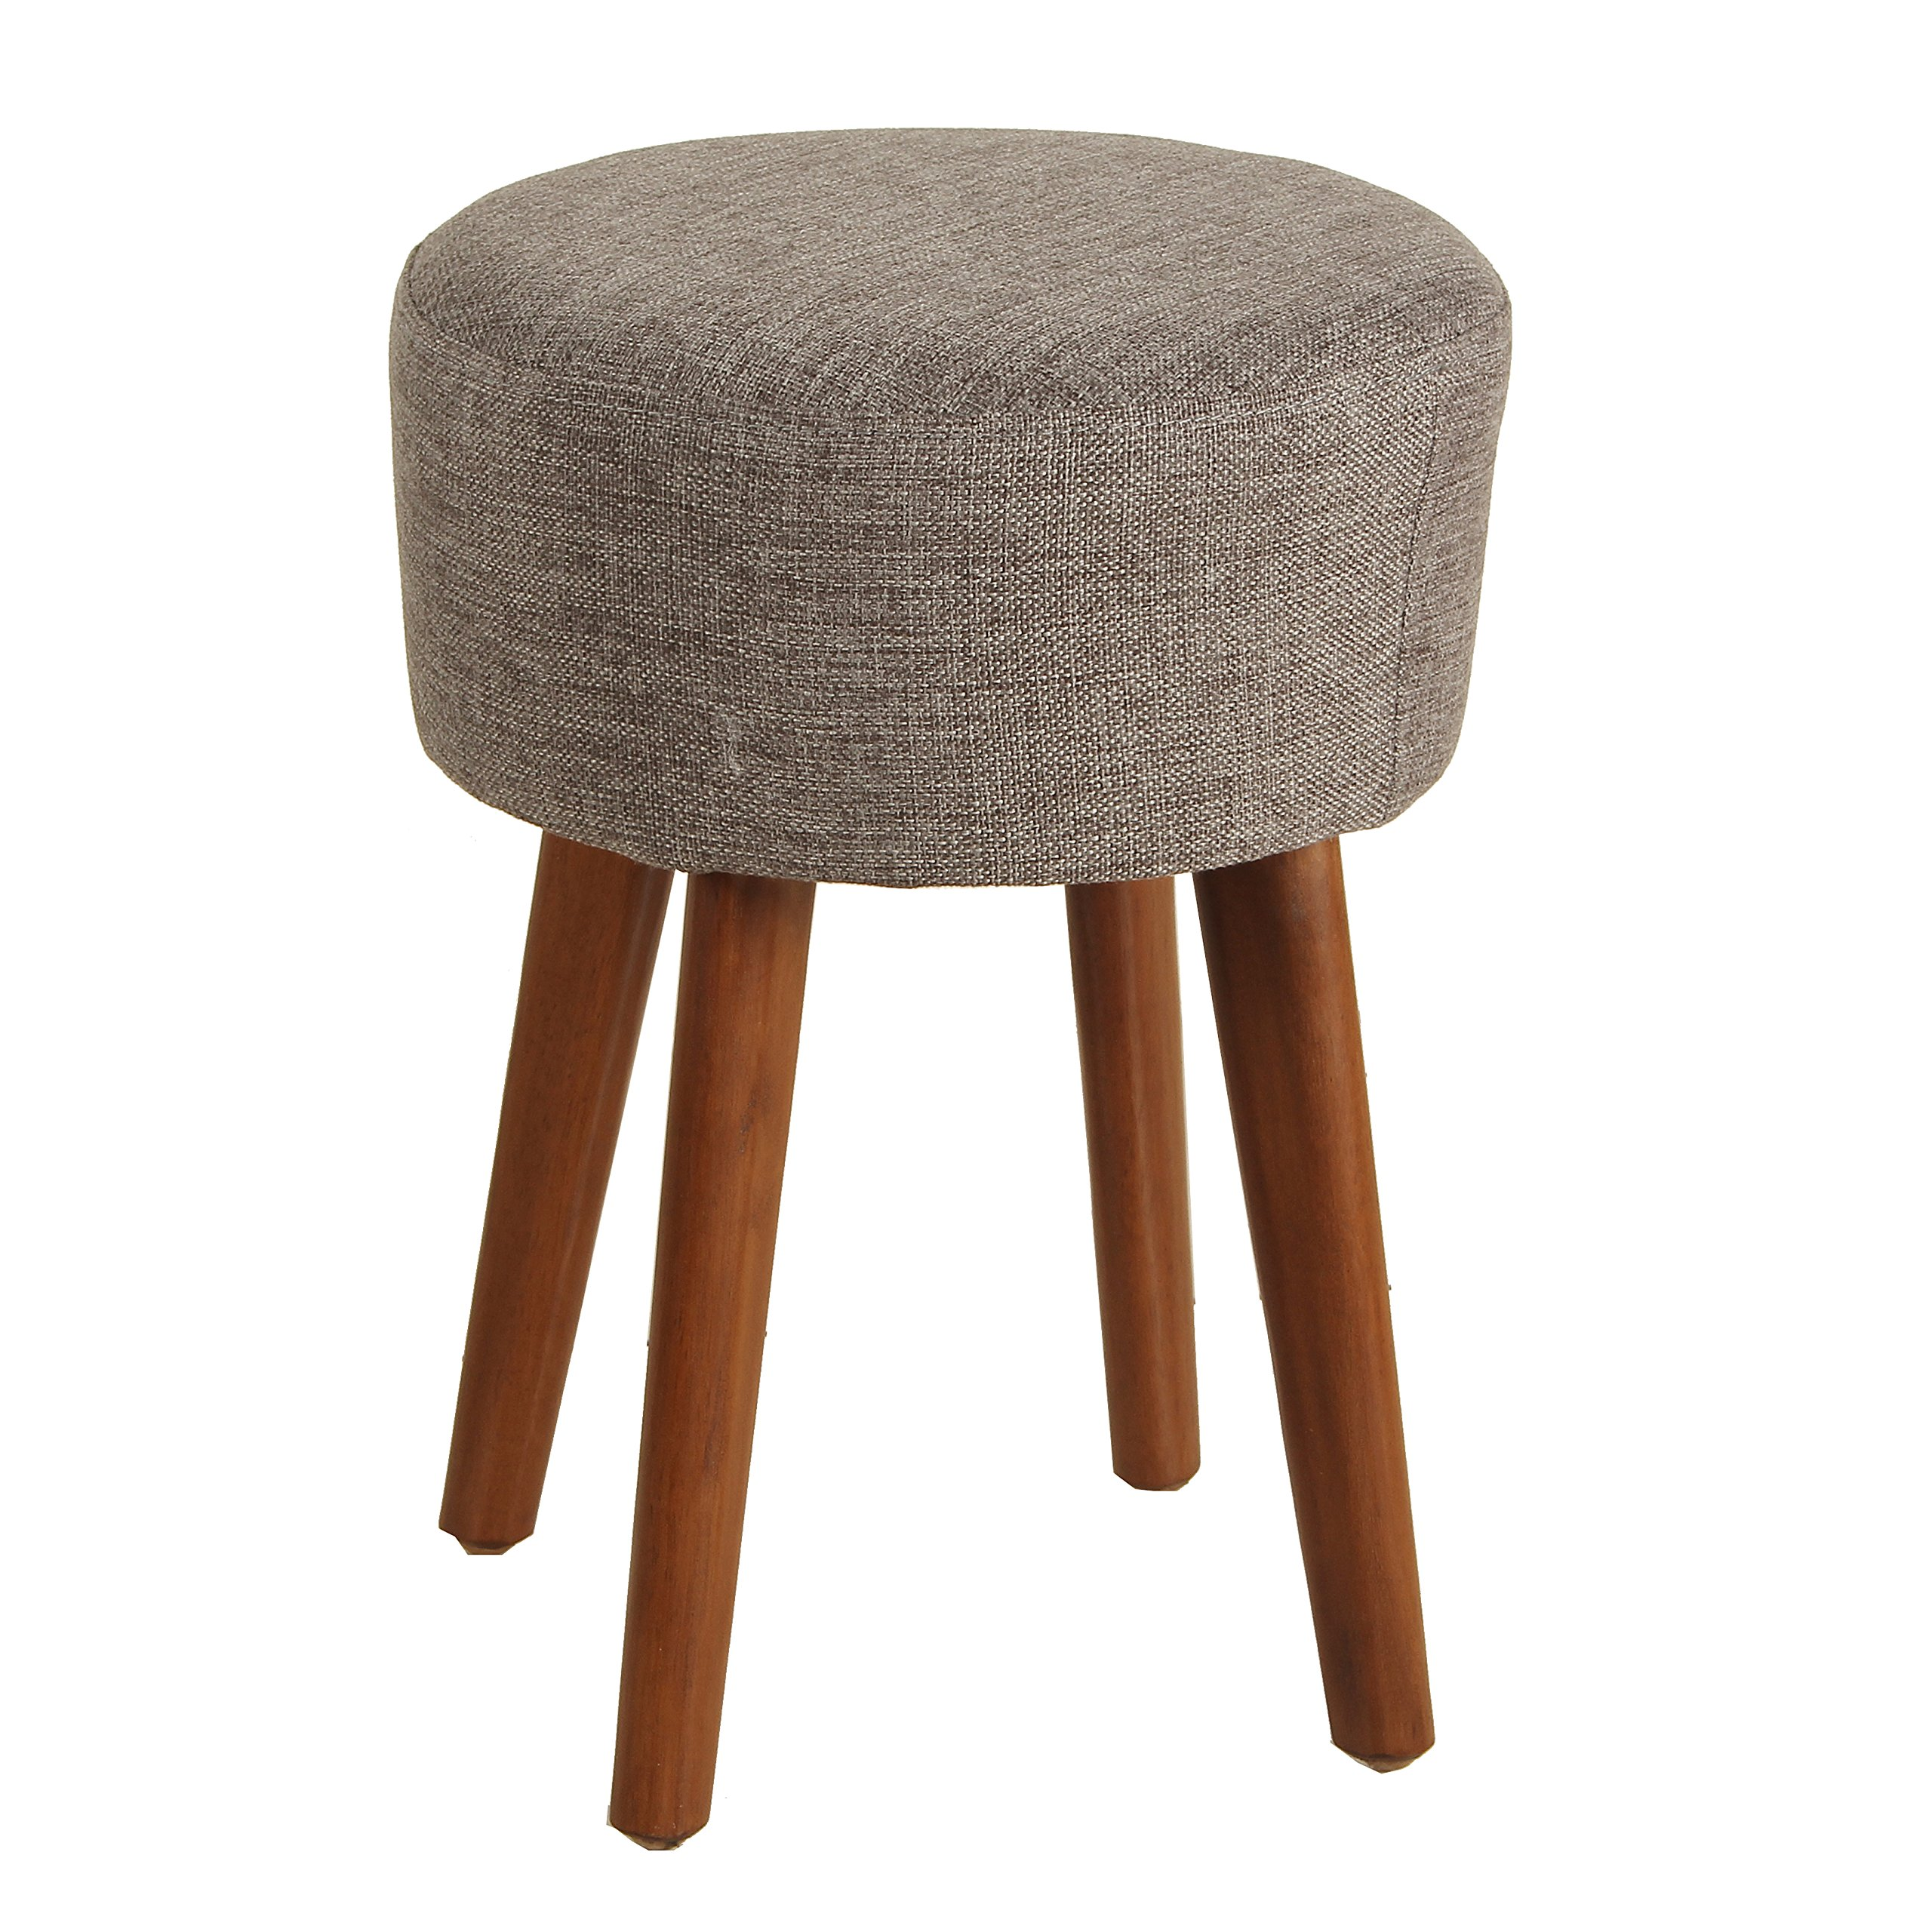 Porthos Home Wallace Upholstered Stool, Medium, Gray